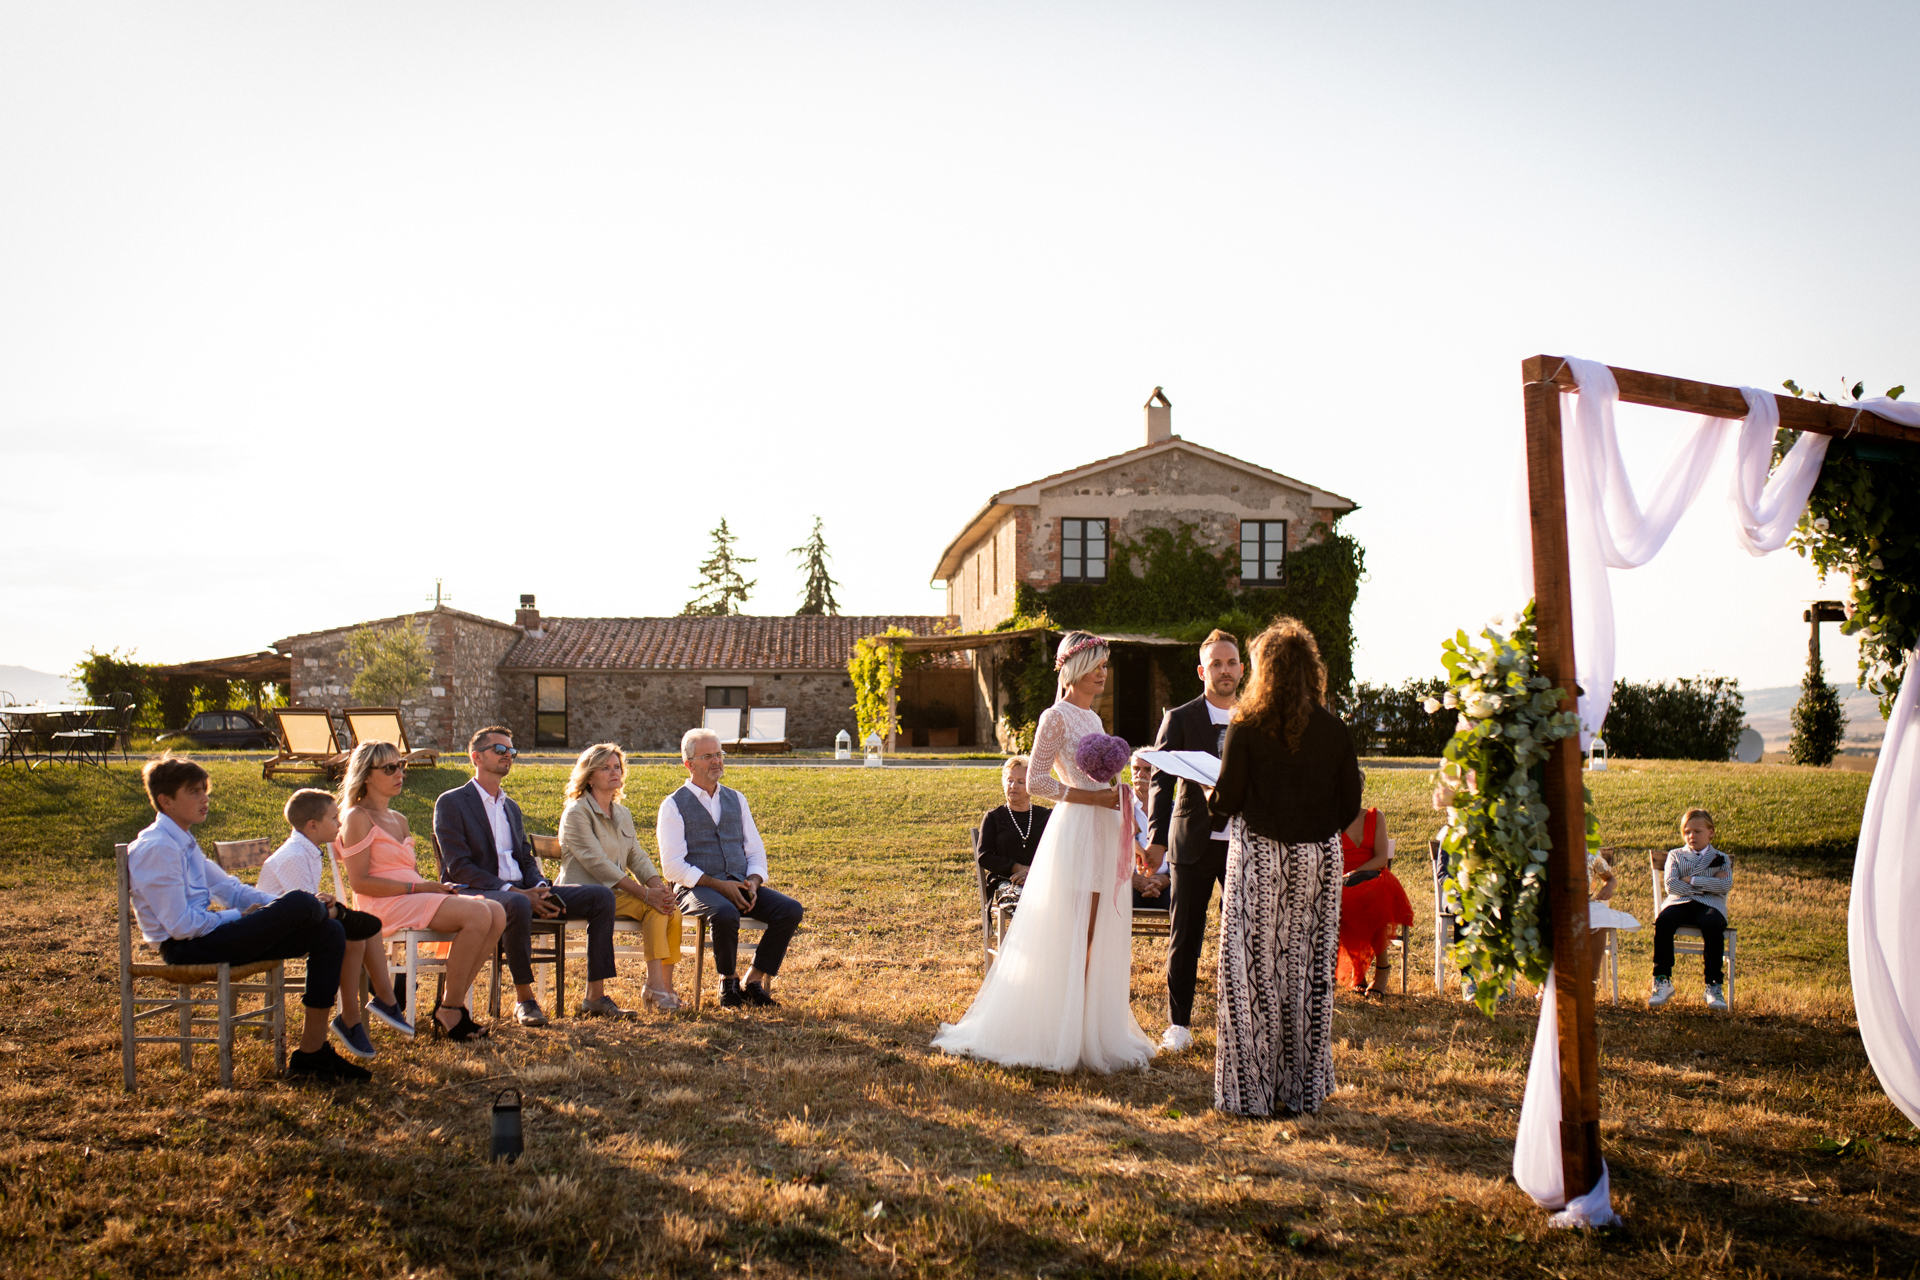 Tuscany Outdoor Elopement Ceremony Picture | The setting of the outdoor small wedding ceremony. The bride and groom with their relatives during the sunset in front of the celebrant and a wooden arc decorated with colored roses.